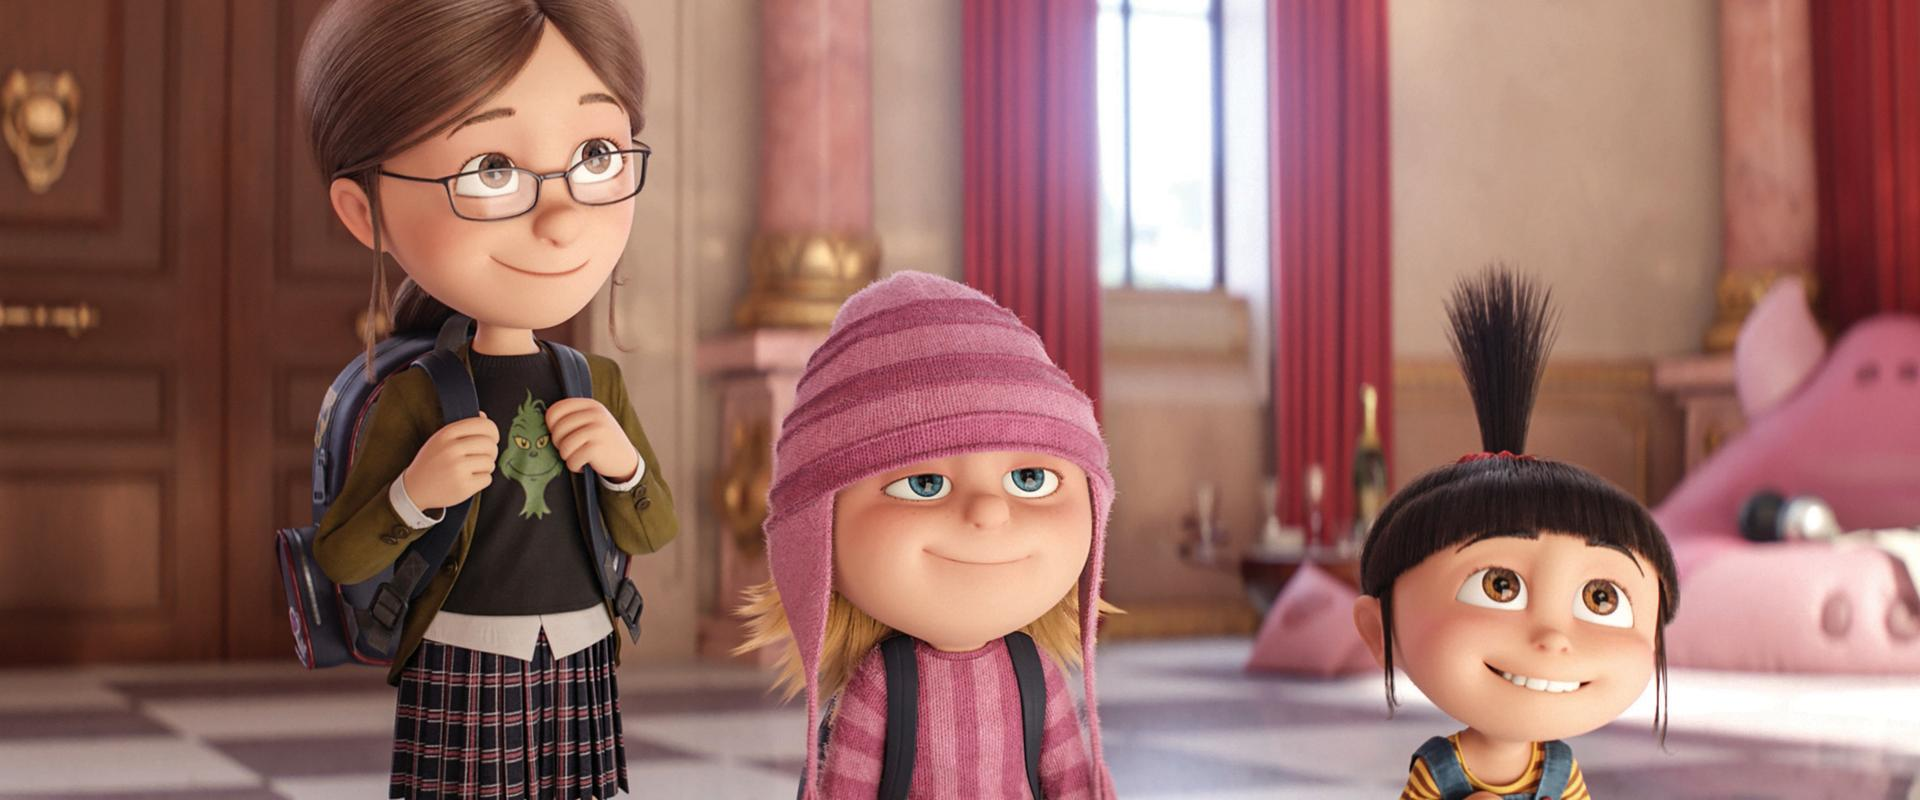 (L to R) Margo (MIRANDA COSGROVE), Edith (DANA GAIER) and Agnes (NEV SCHARREL) in the 2017 animated film DESPICABLE ME 3, directed by Pierre Coffin, Kyle Balda.